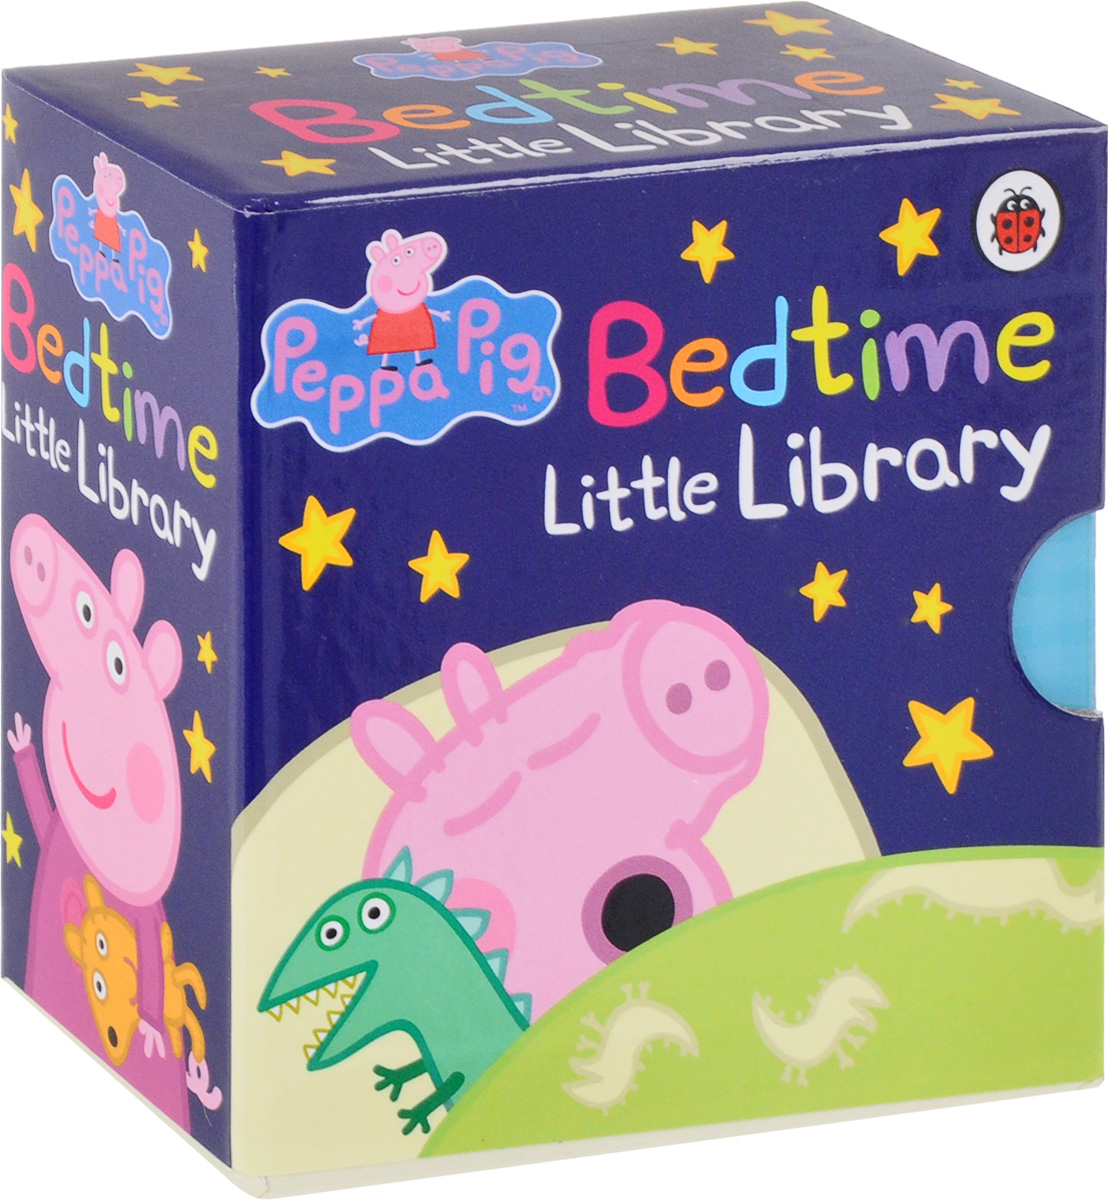 Купить Peppa Pig: Bedtime Little Library